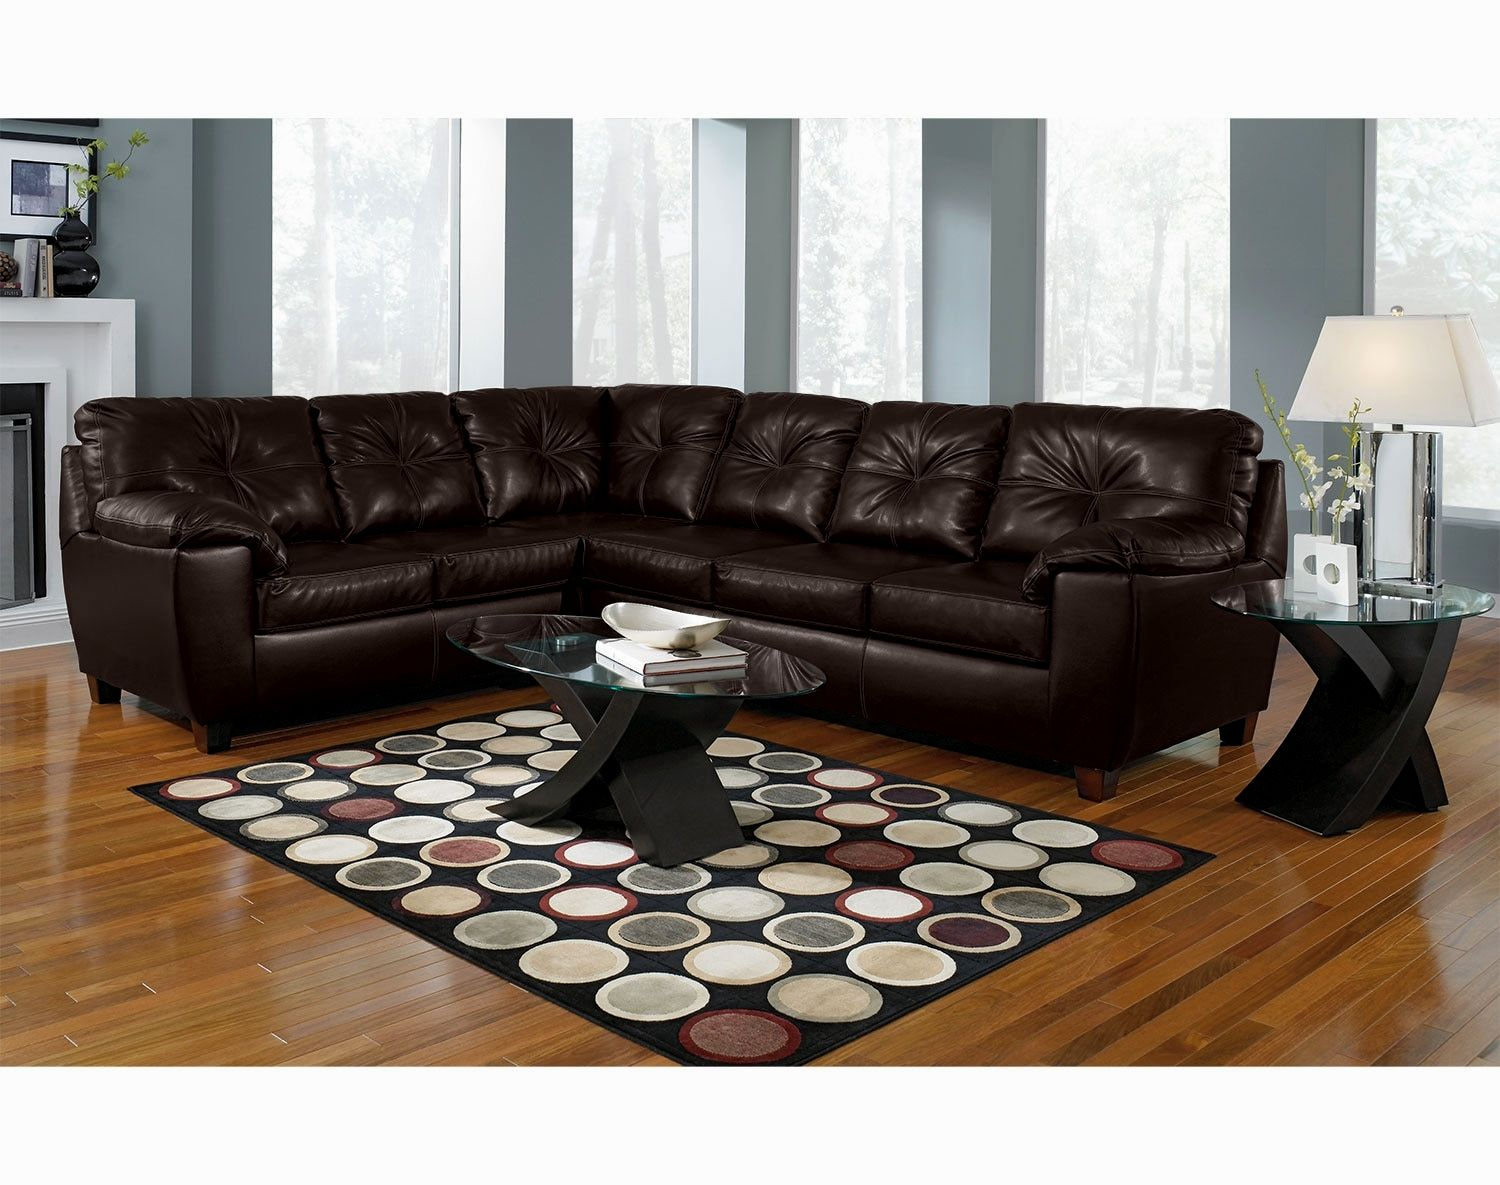 lovely modern futon sofa concept-Superb Modern Futon sofa Picture